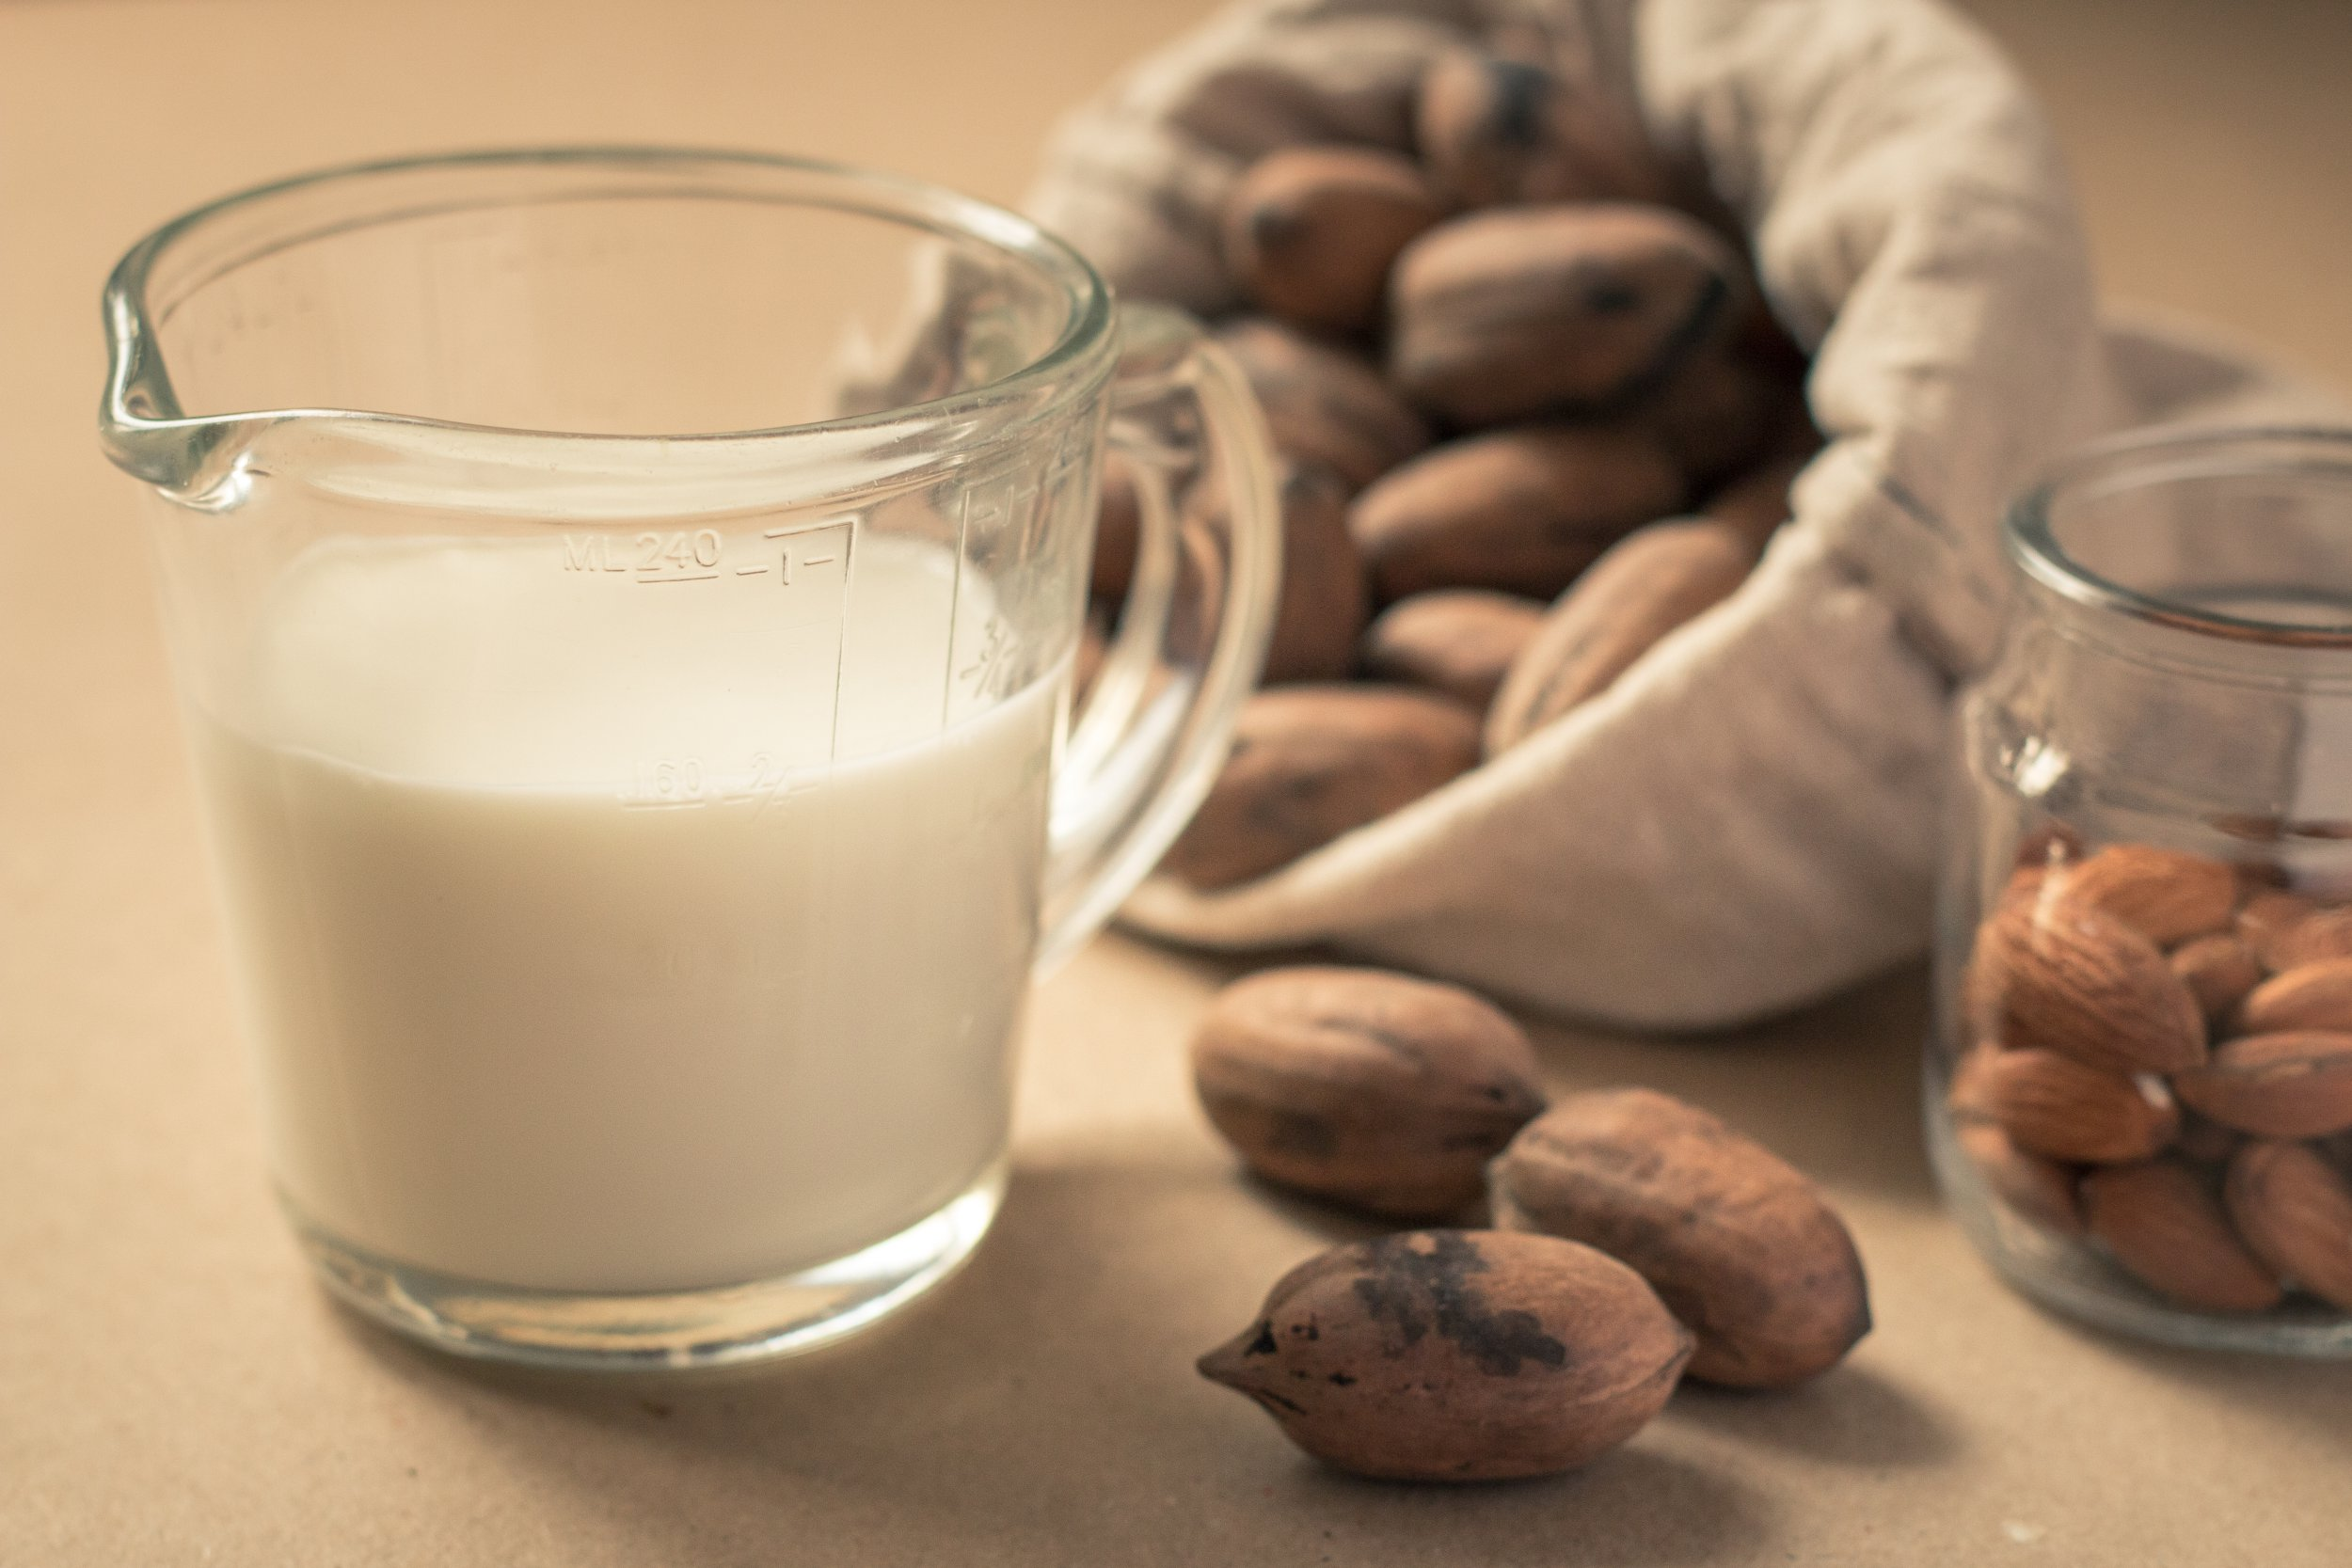 Vegans say plant-based alternatives to dairy milk offer the same amount of nutrients (Picture: Shutterstock/BoPhotoAdventures)